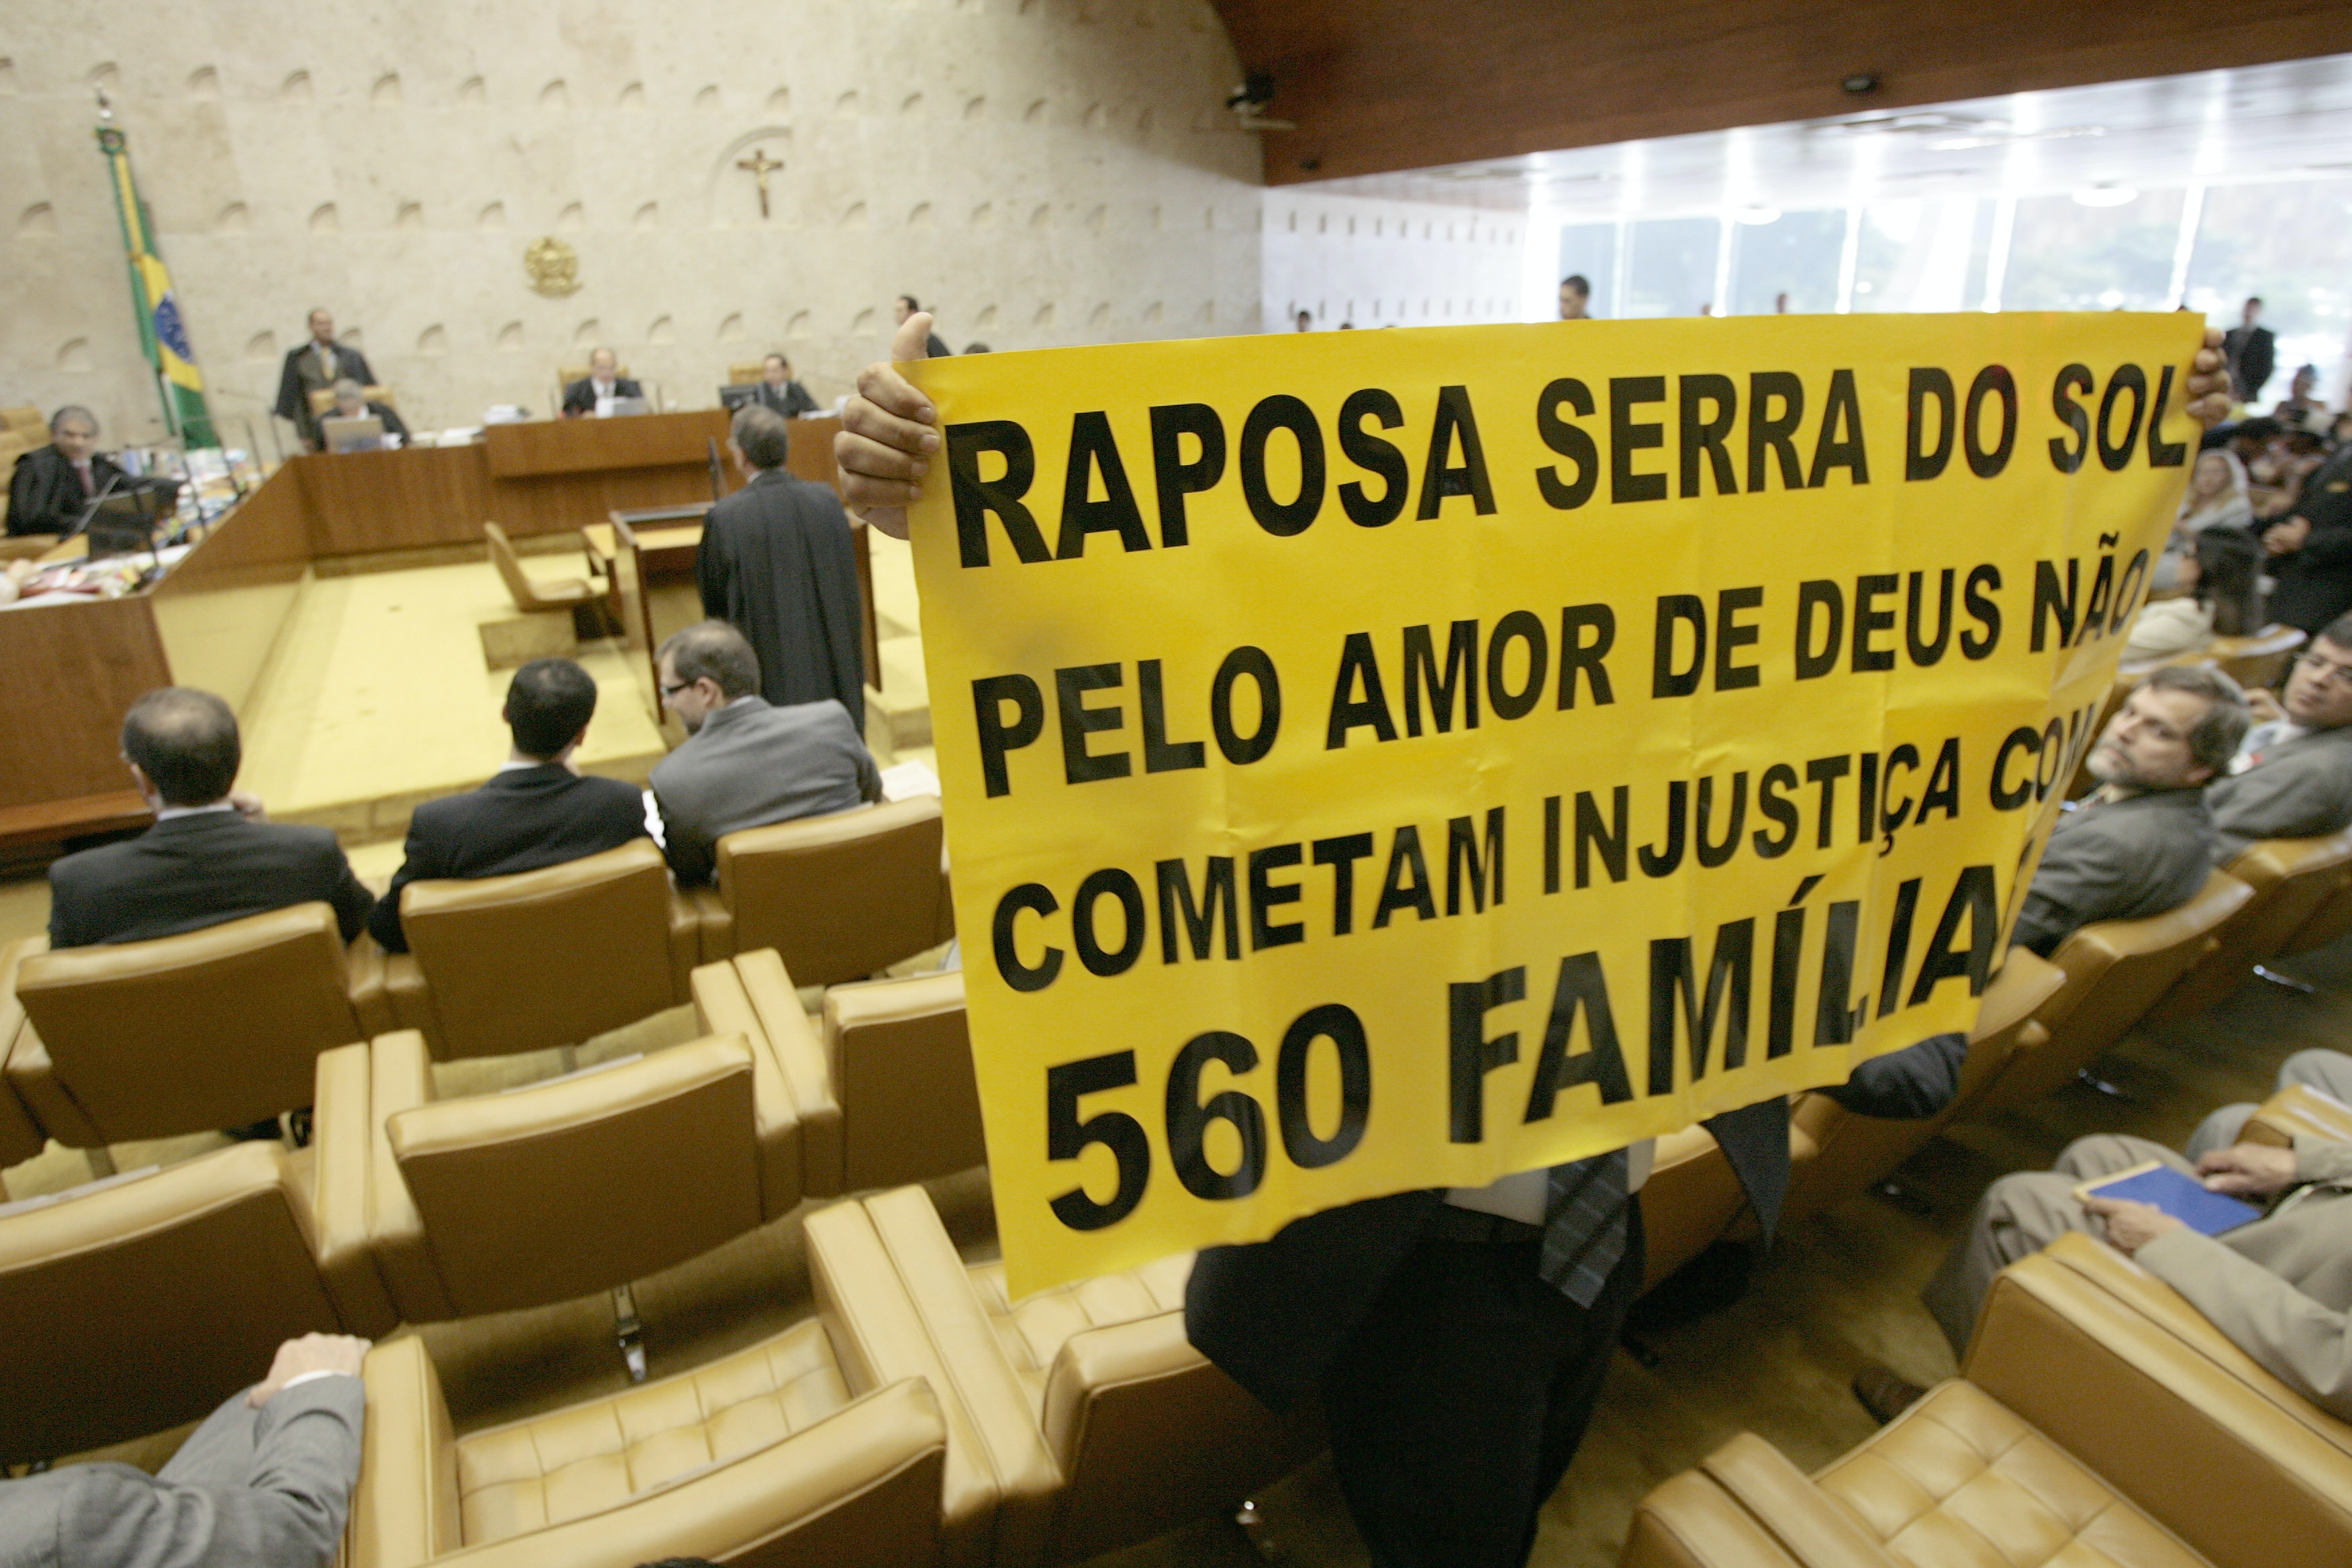 "A representative of a group of farmers who oppose a resolution of Brazil's Supreme Court, confirming that the Raposa Serra do Sol reservation in northern Brazil must remain intact, holds a sign during a court's session in Brasilia, Thursday, March 19, 2009. The court ruled Thursday that the reservation must remain intact, a ruling seen as bolstering indigenous rights, and which sets an important precedent for laying out and protecting the boundaries for many Indian reserves in Brazil.The sign reads in Portuguese: ""Raposa Serra do Sol, for the love of God don't commit injustice for 560 families"".(AP Photo/Eraldo Peres)"